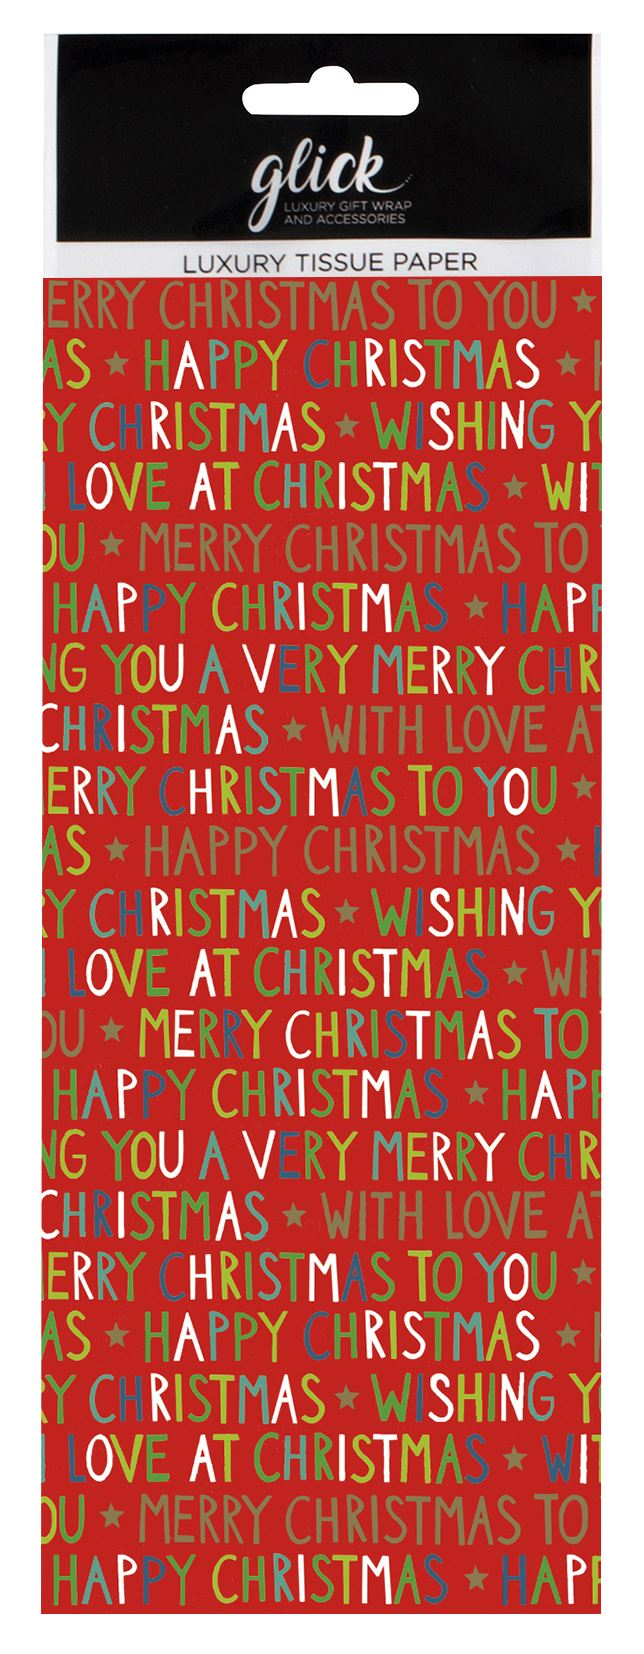 With Love Christmas Tissue Paper 4 Sheets